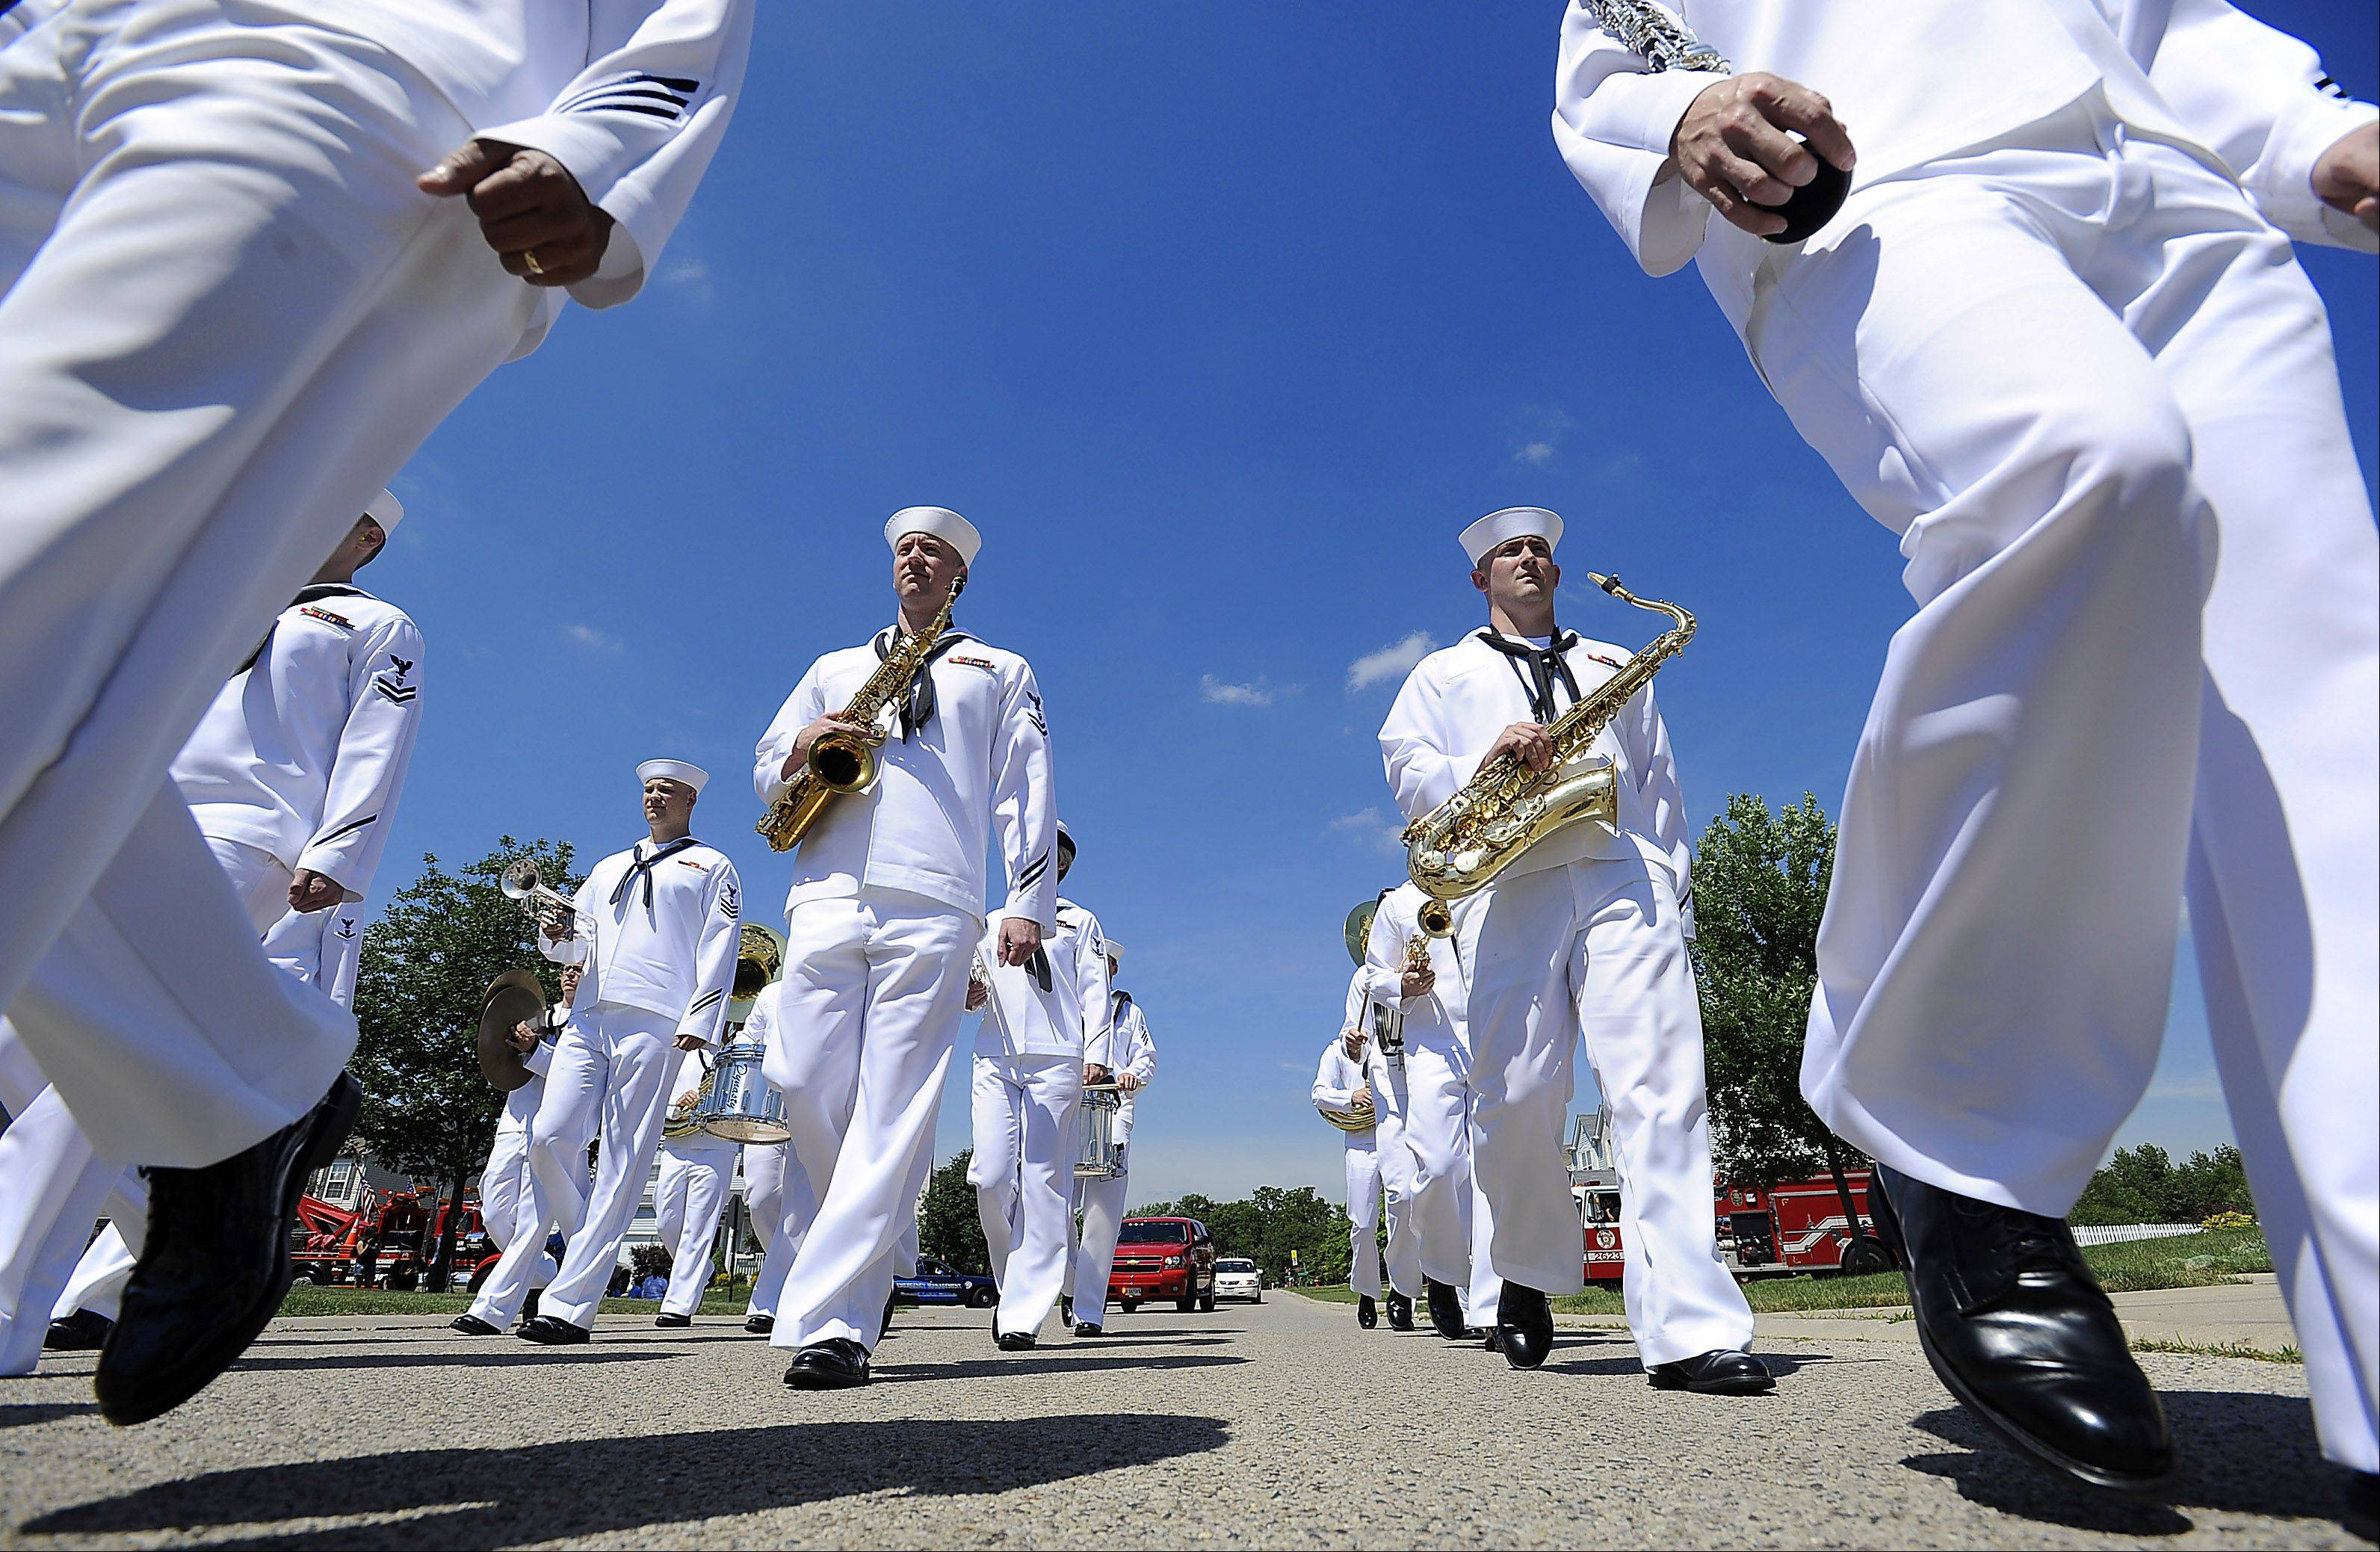 The Navy Band Great Lakes helped celebrate summer at the Round Lake Heights Festival on Saturday, July 13.